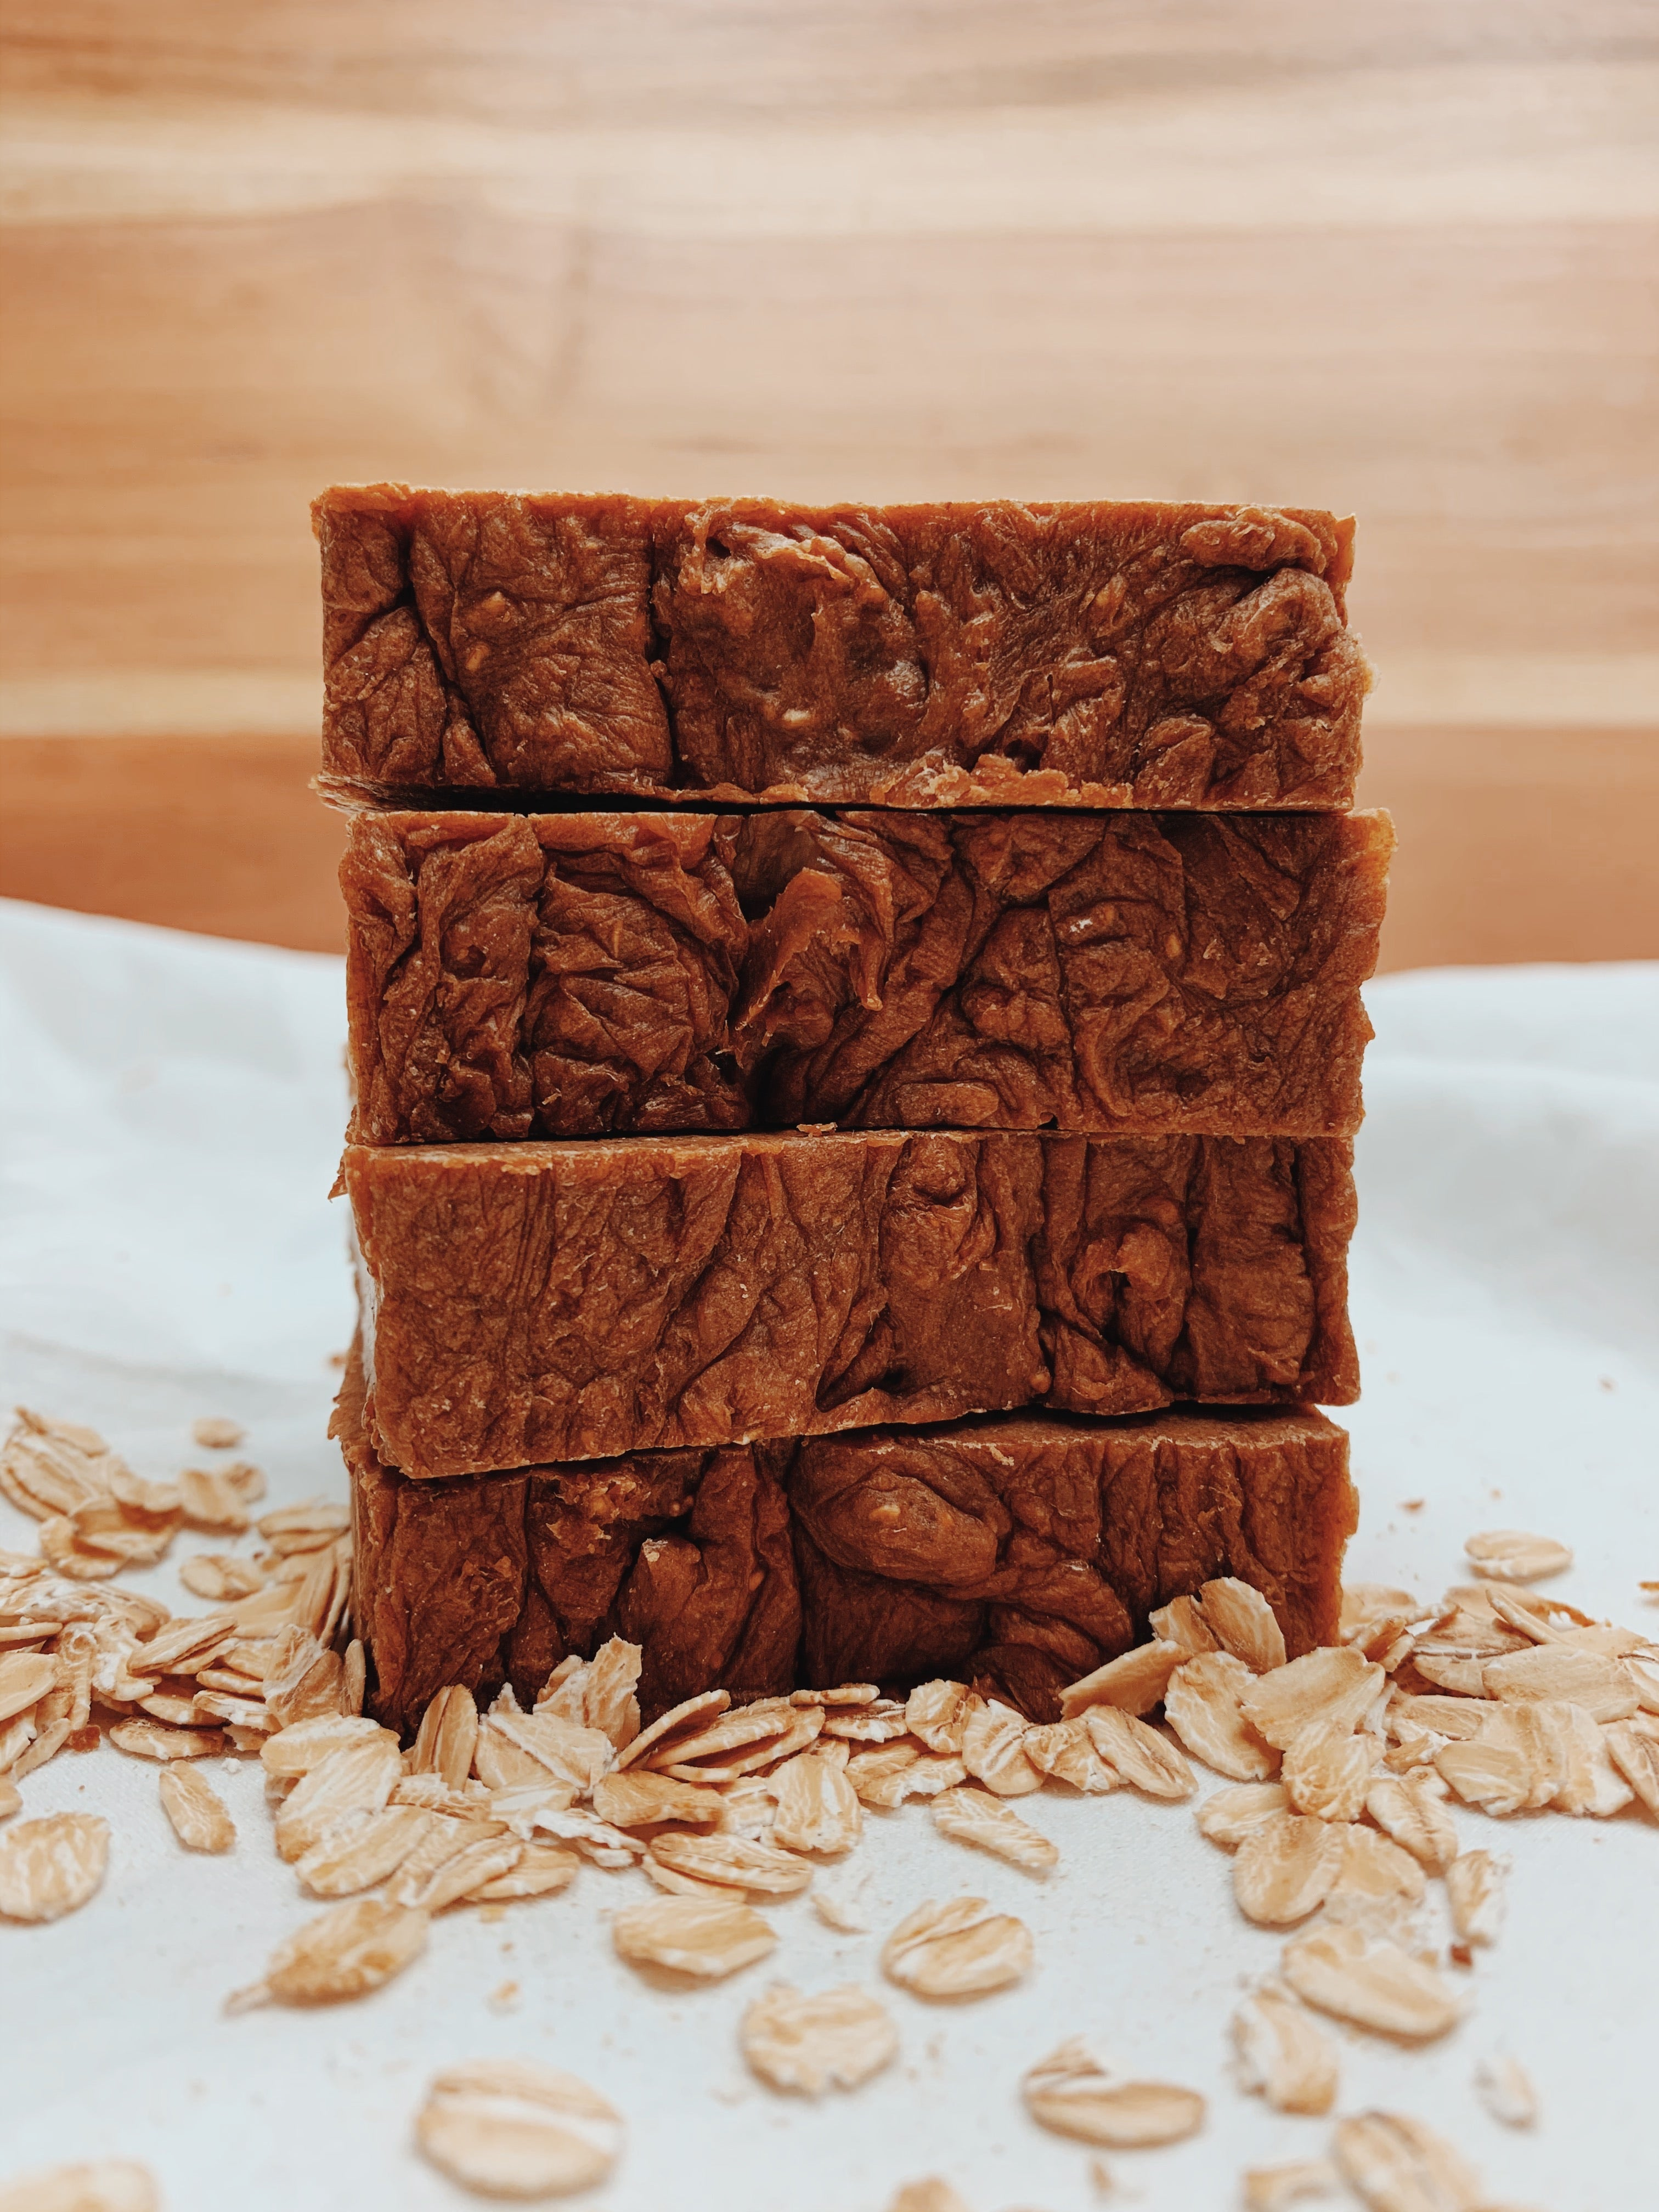 Honey and Oats Bar